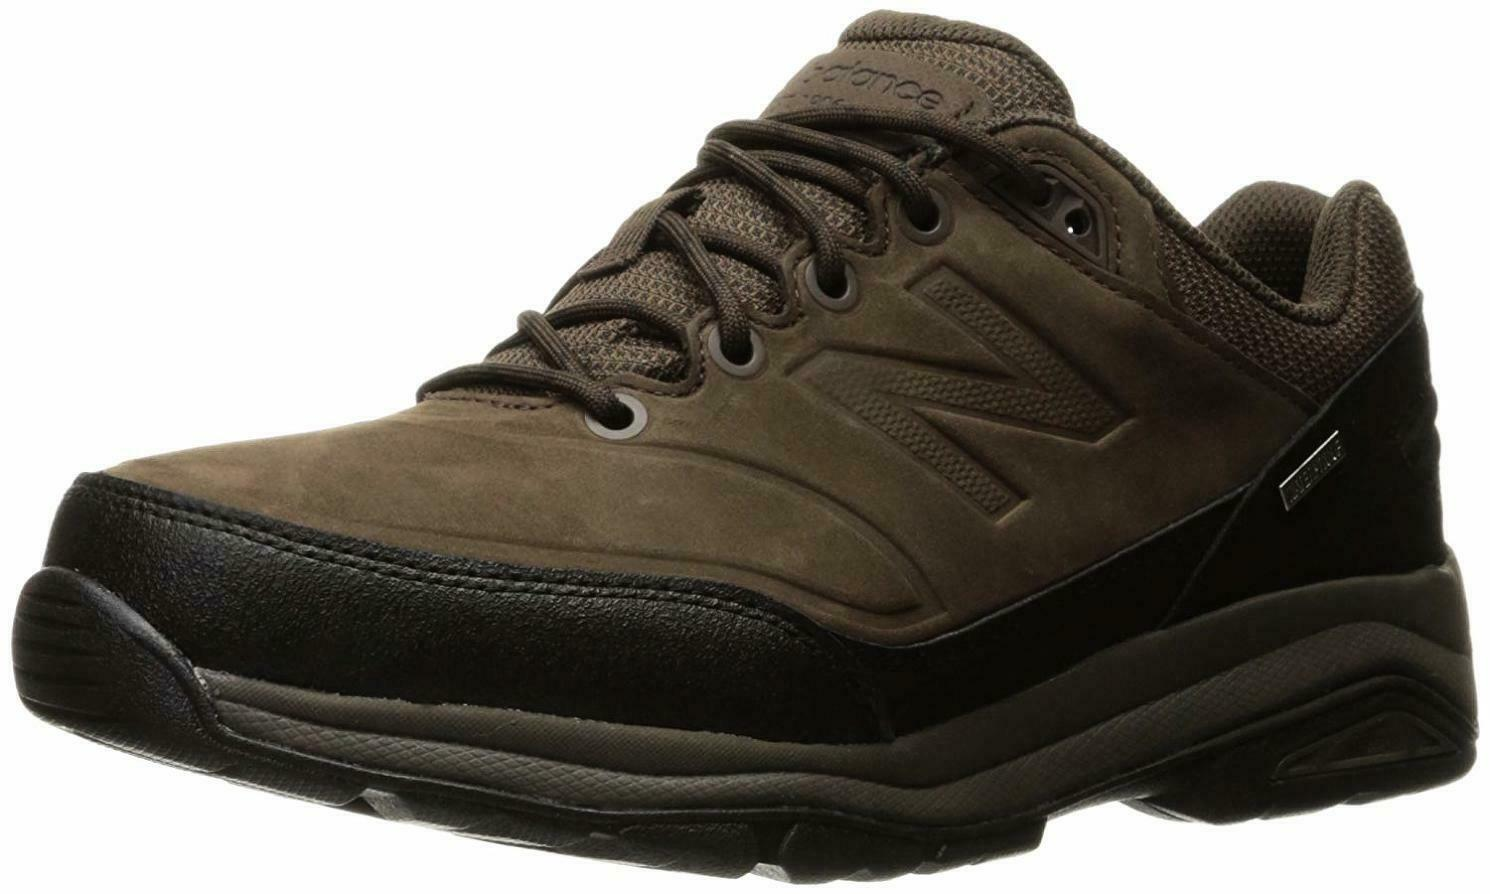 New Balance Men's M1300v1 Walking shoes - Choose SZ color